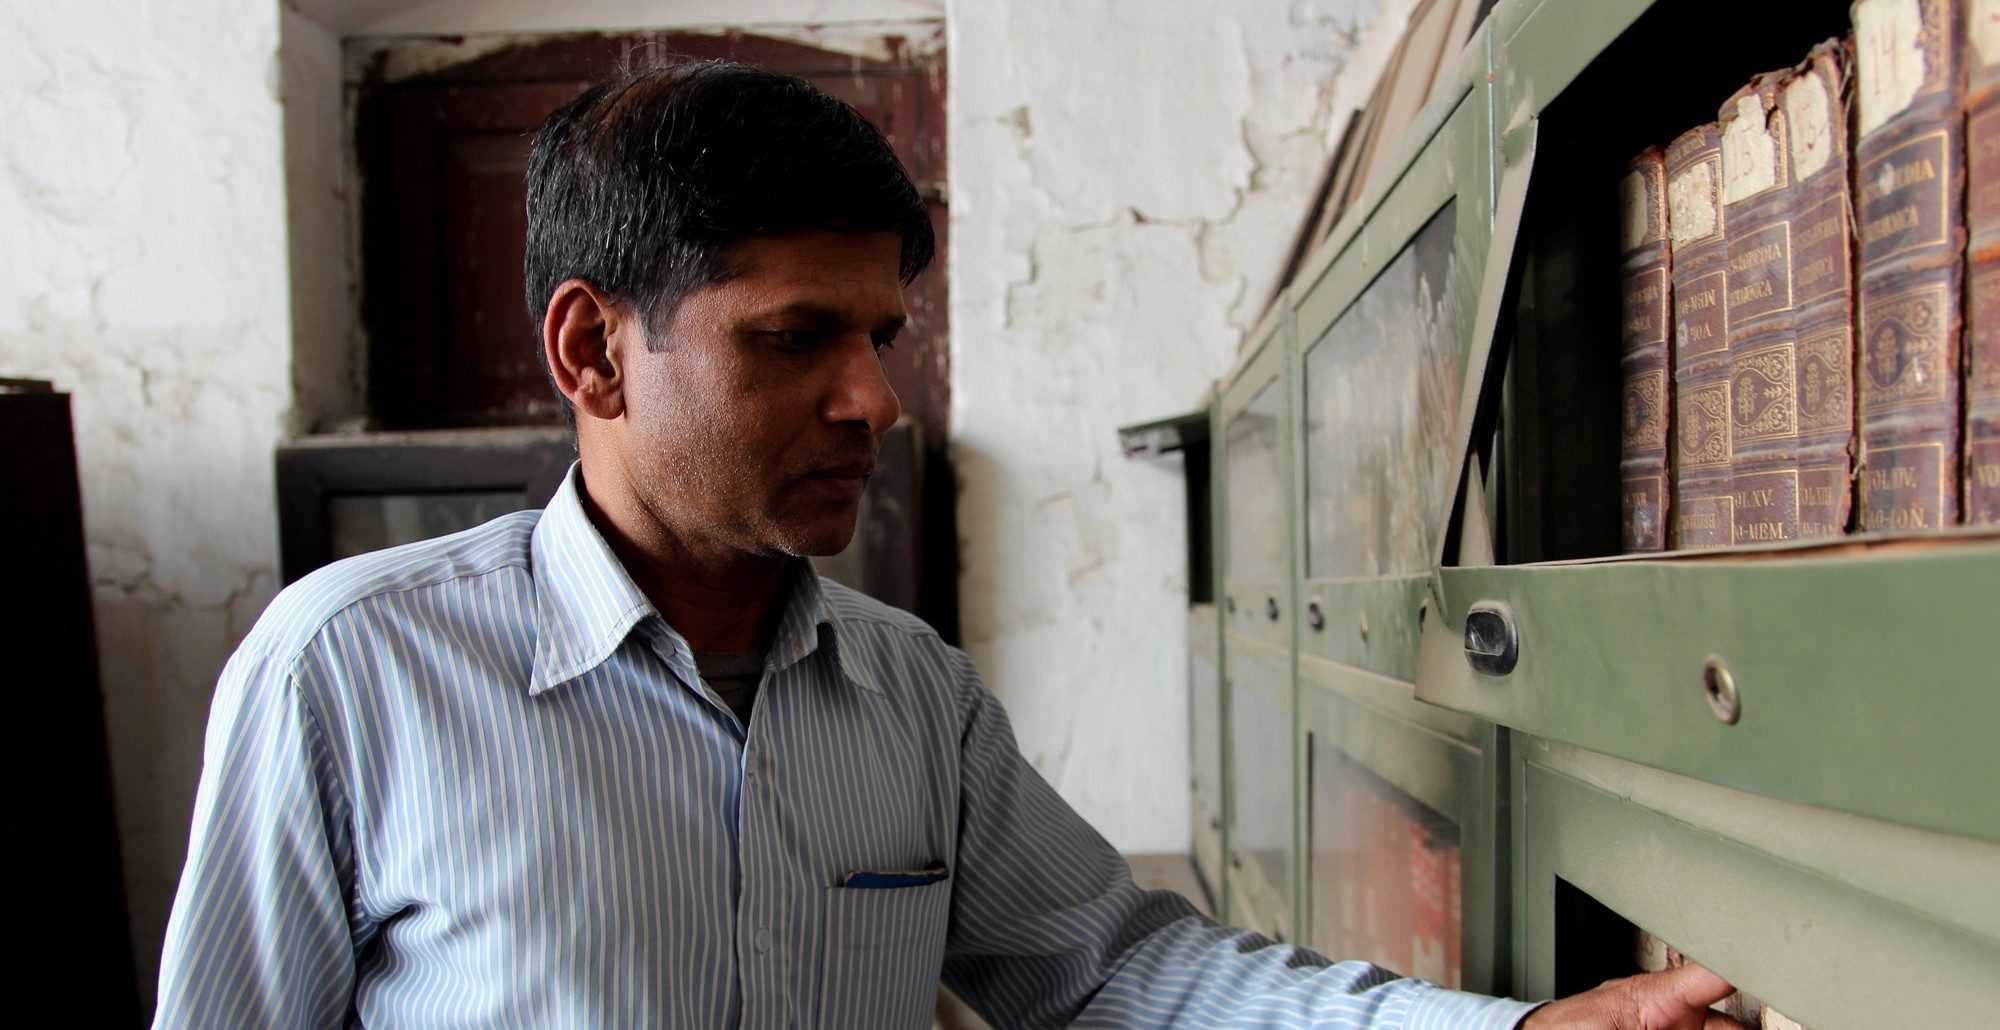 'We used to be a well-equipped school. Now we don't even have a library'